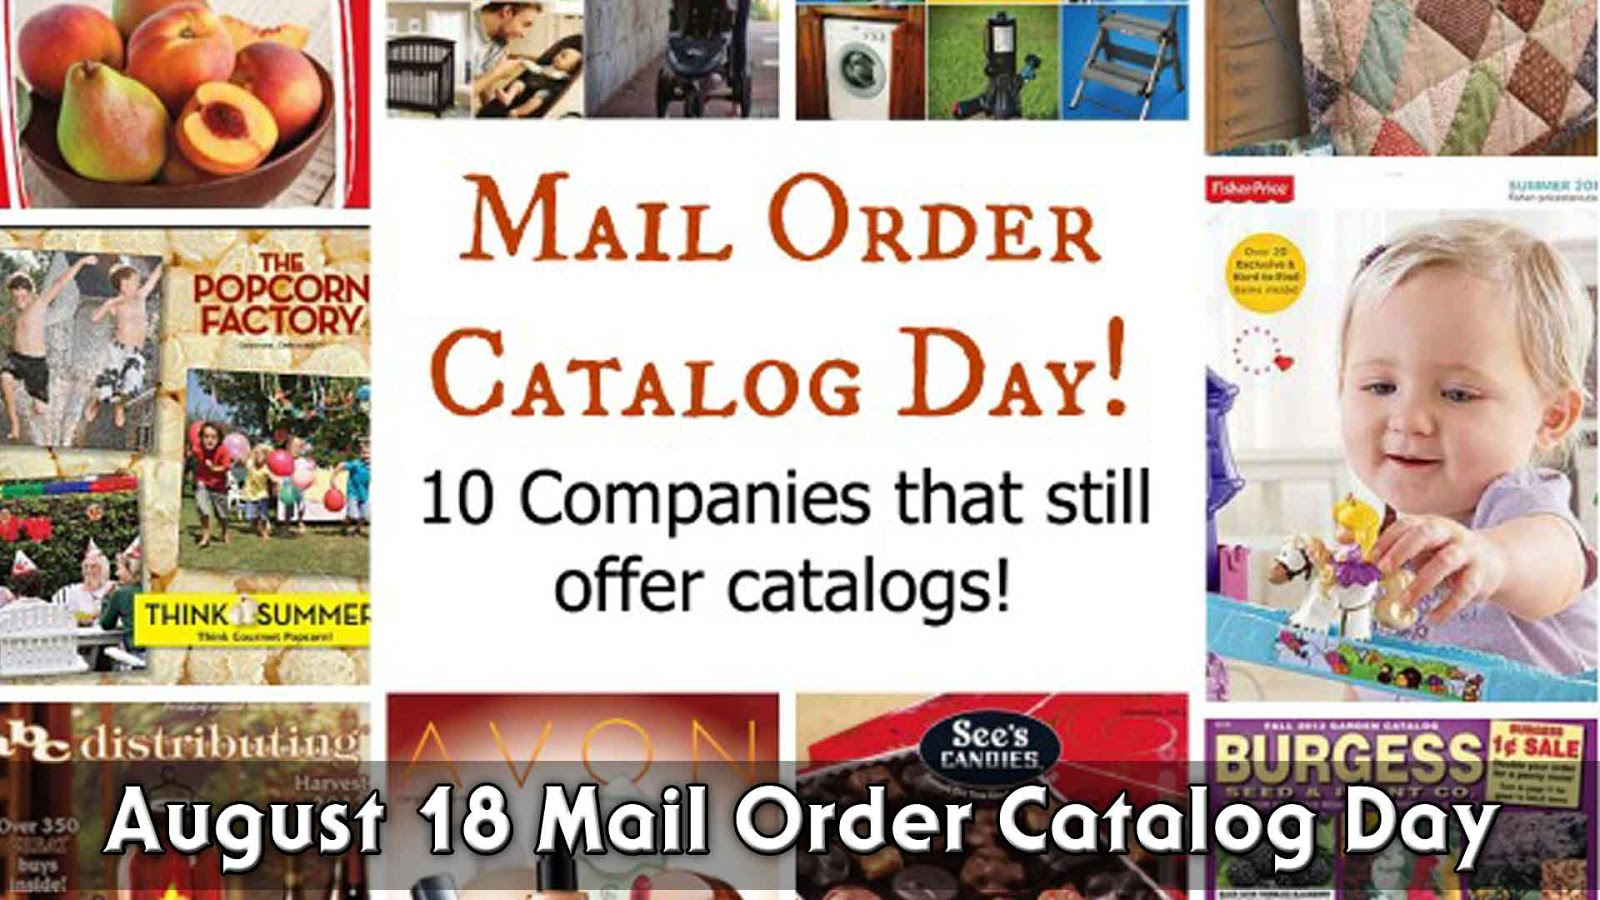 Home decor catalogs are a great way to get some free design and decorating ideas for your home. You can request some or all of the home decor catalogs below and get them sent straight to your mailbox for free.